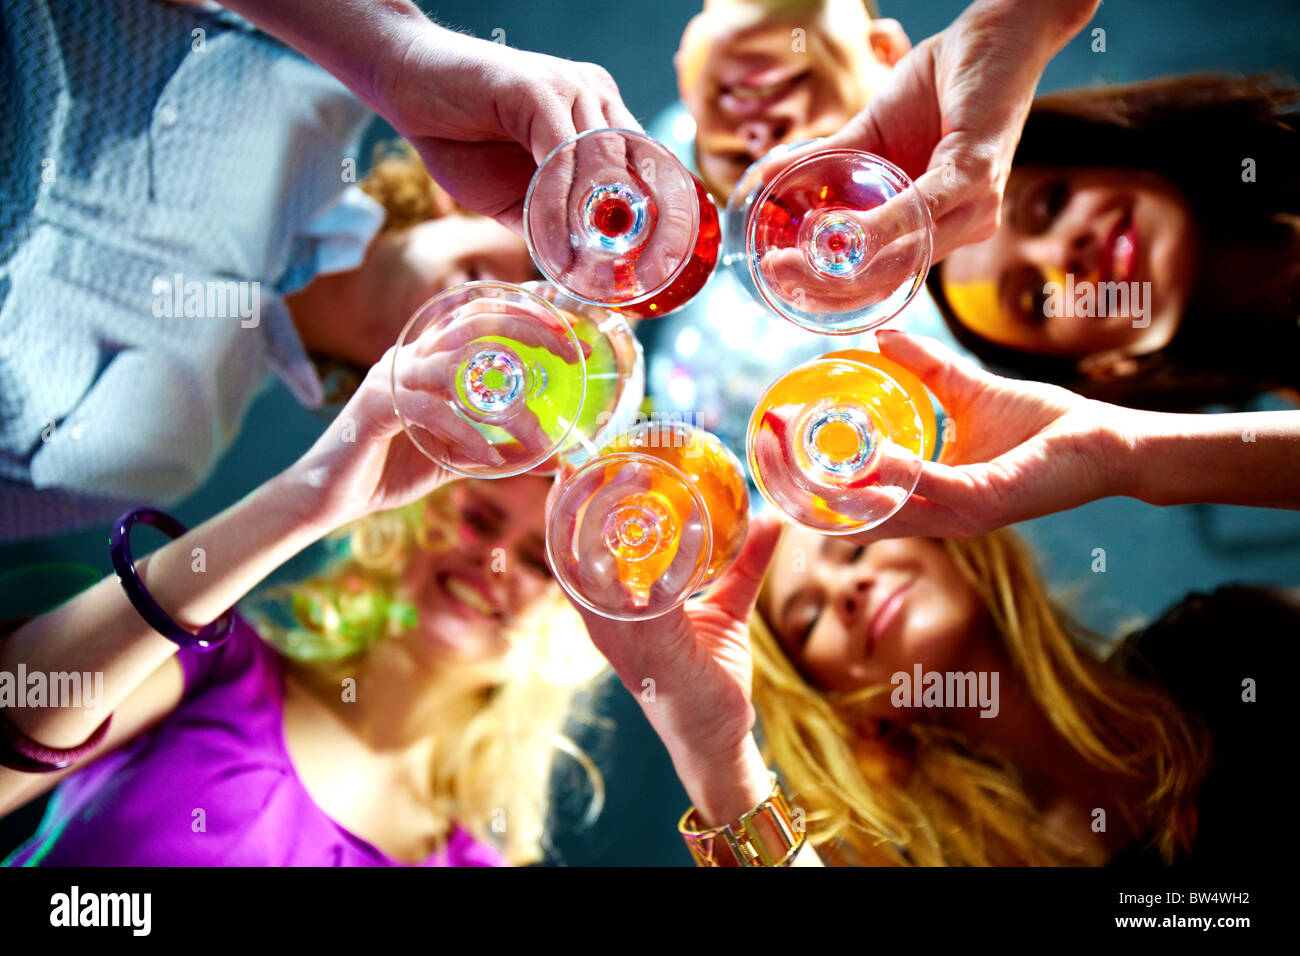 Below view of people clinking glasses with each other - Stock Image